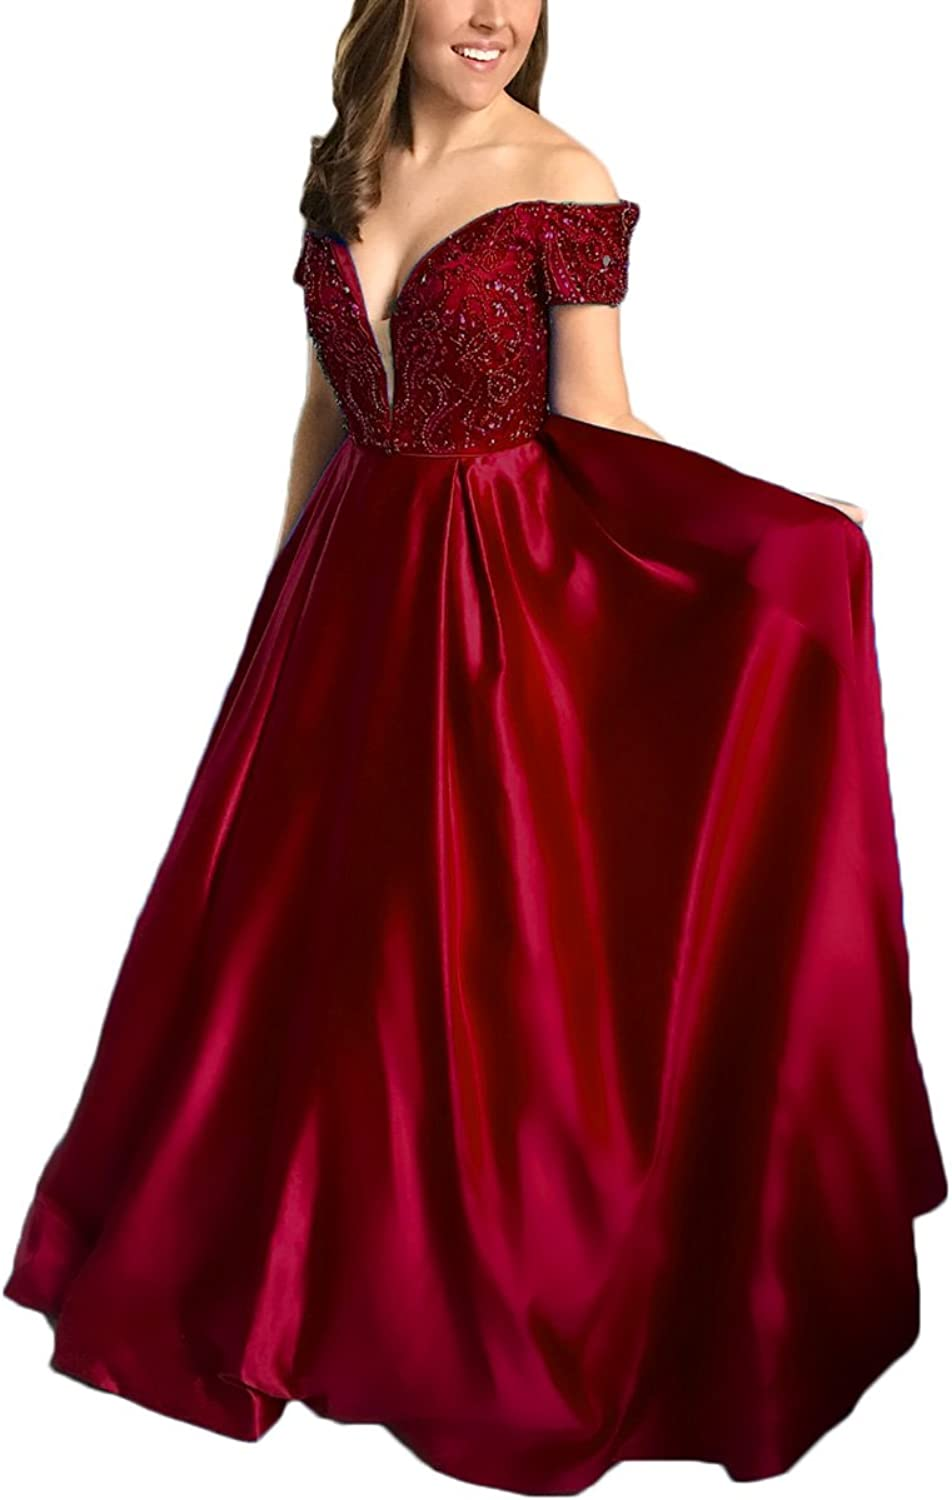 Alilith.Z Sexy Off The Shoulder Prom Dresses A Line Crystal Sequins Beaded Long Formal Evening Party Dresses for Women